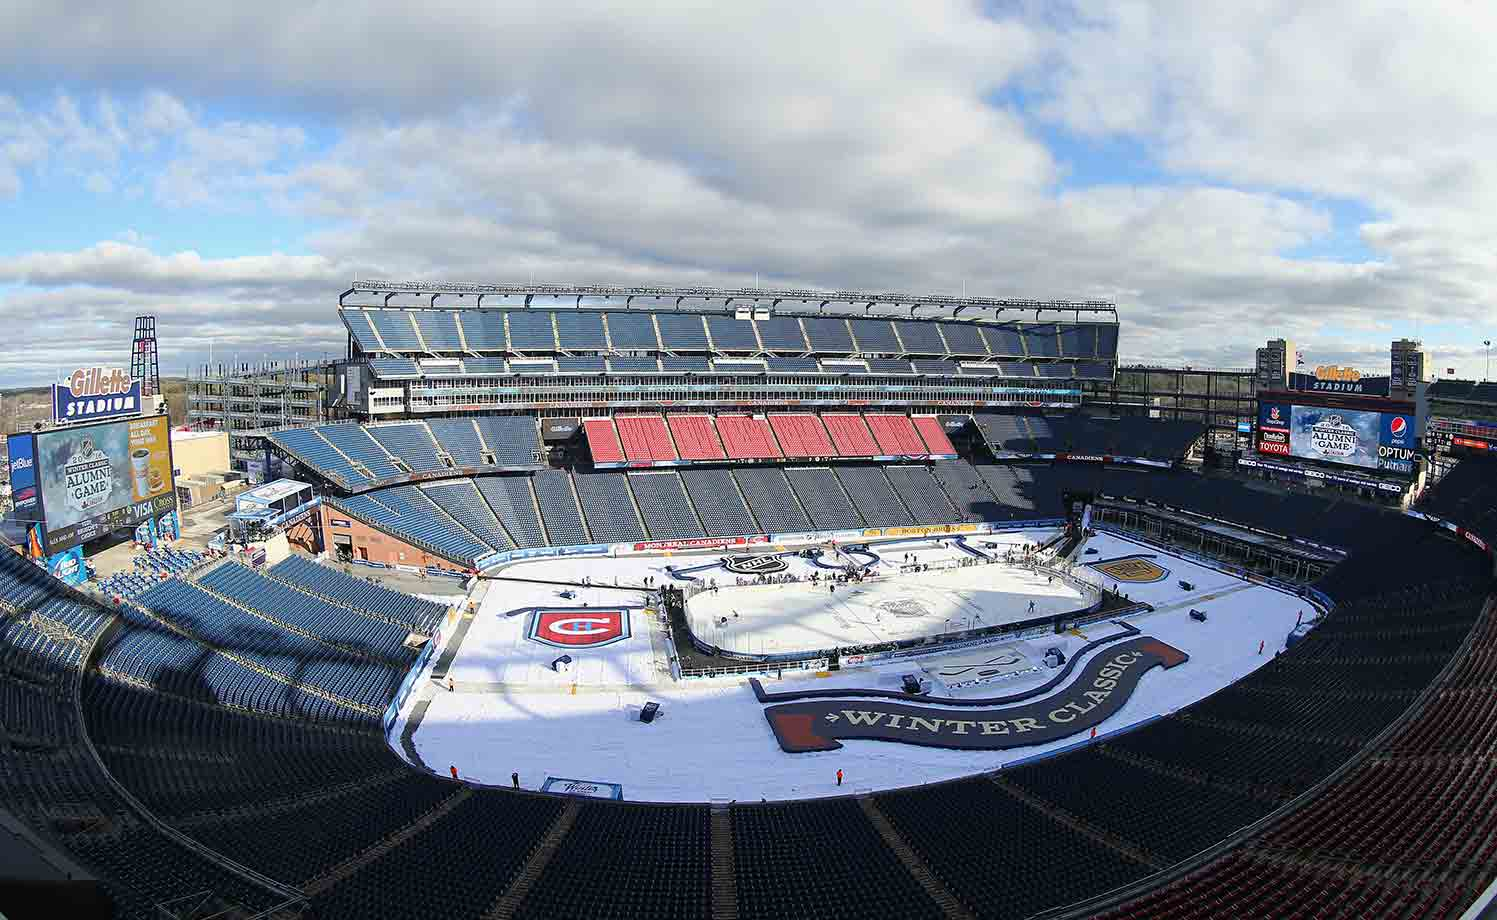 In 2016, the traditional New Year's Day event returned to Boston. Fenway Park hosted the Bruins and visiting Philadelphia Flyers in 2010. This time, the site was the more modern Gillette Stadium, home of the NFL's Patriots. The Bruins' foes were their traditional bitter rivals, the Montreal Canadiens.